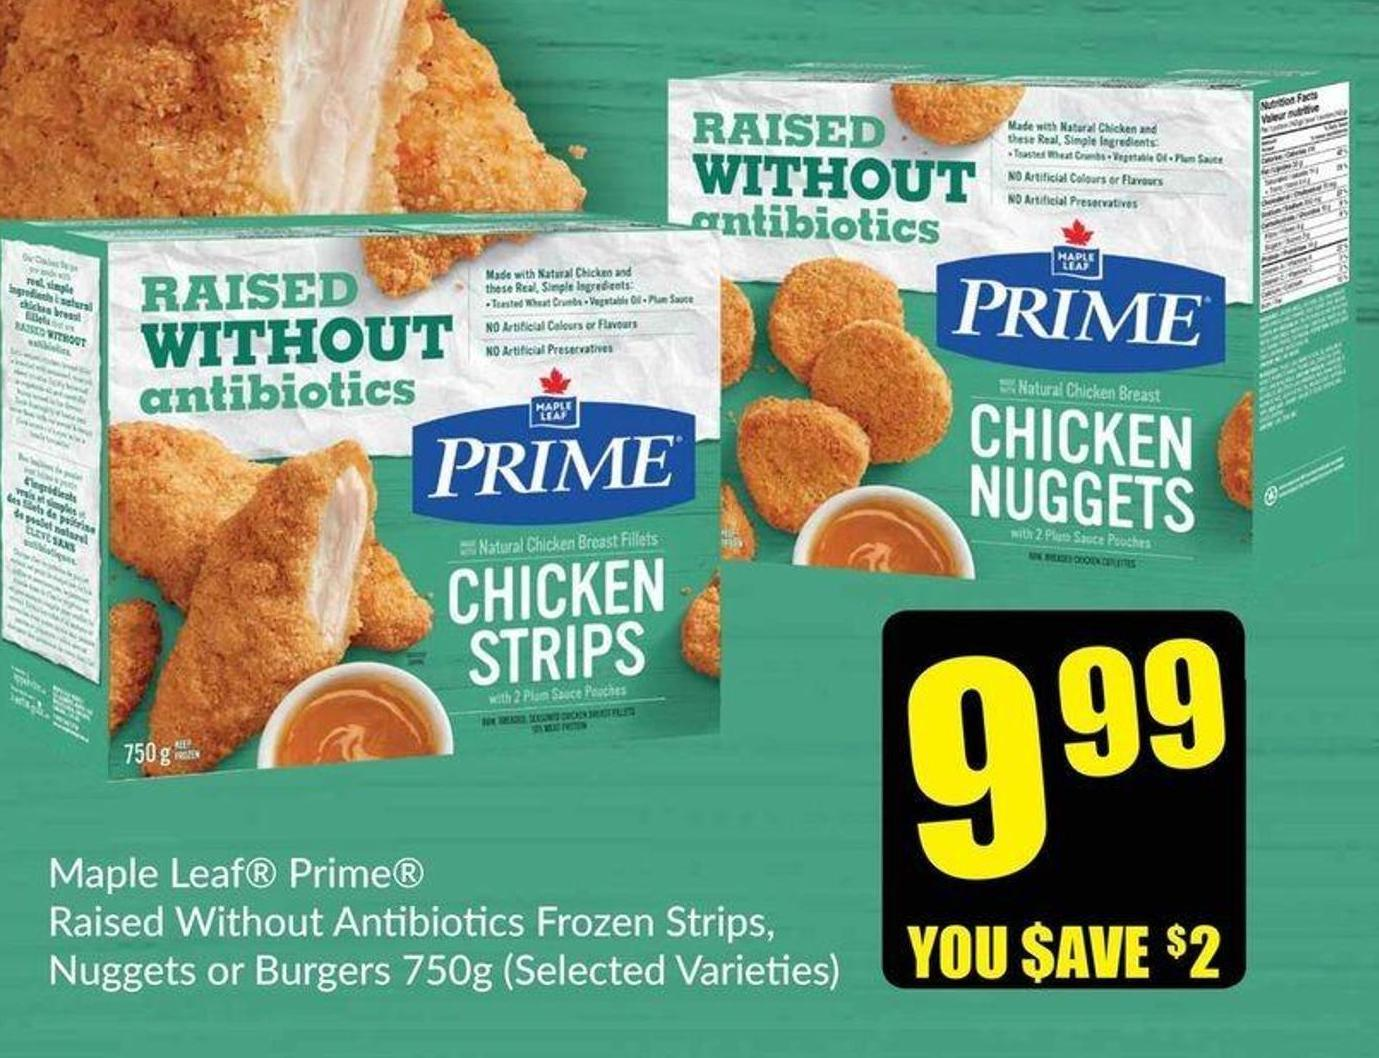 Maple Leaf Prime Raised Without Antibiotics Frozen Strips - Nuggets or Burgers 750g (Selected Varieties)